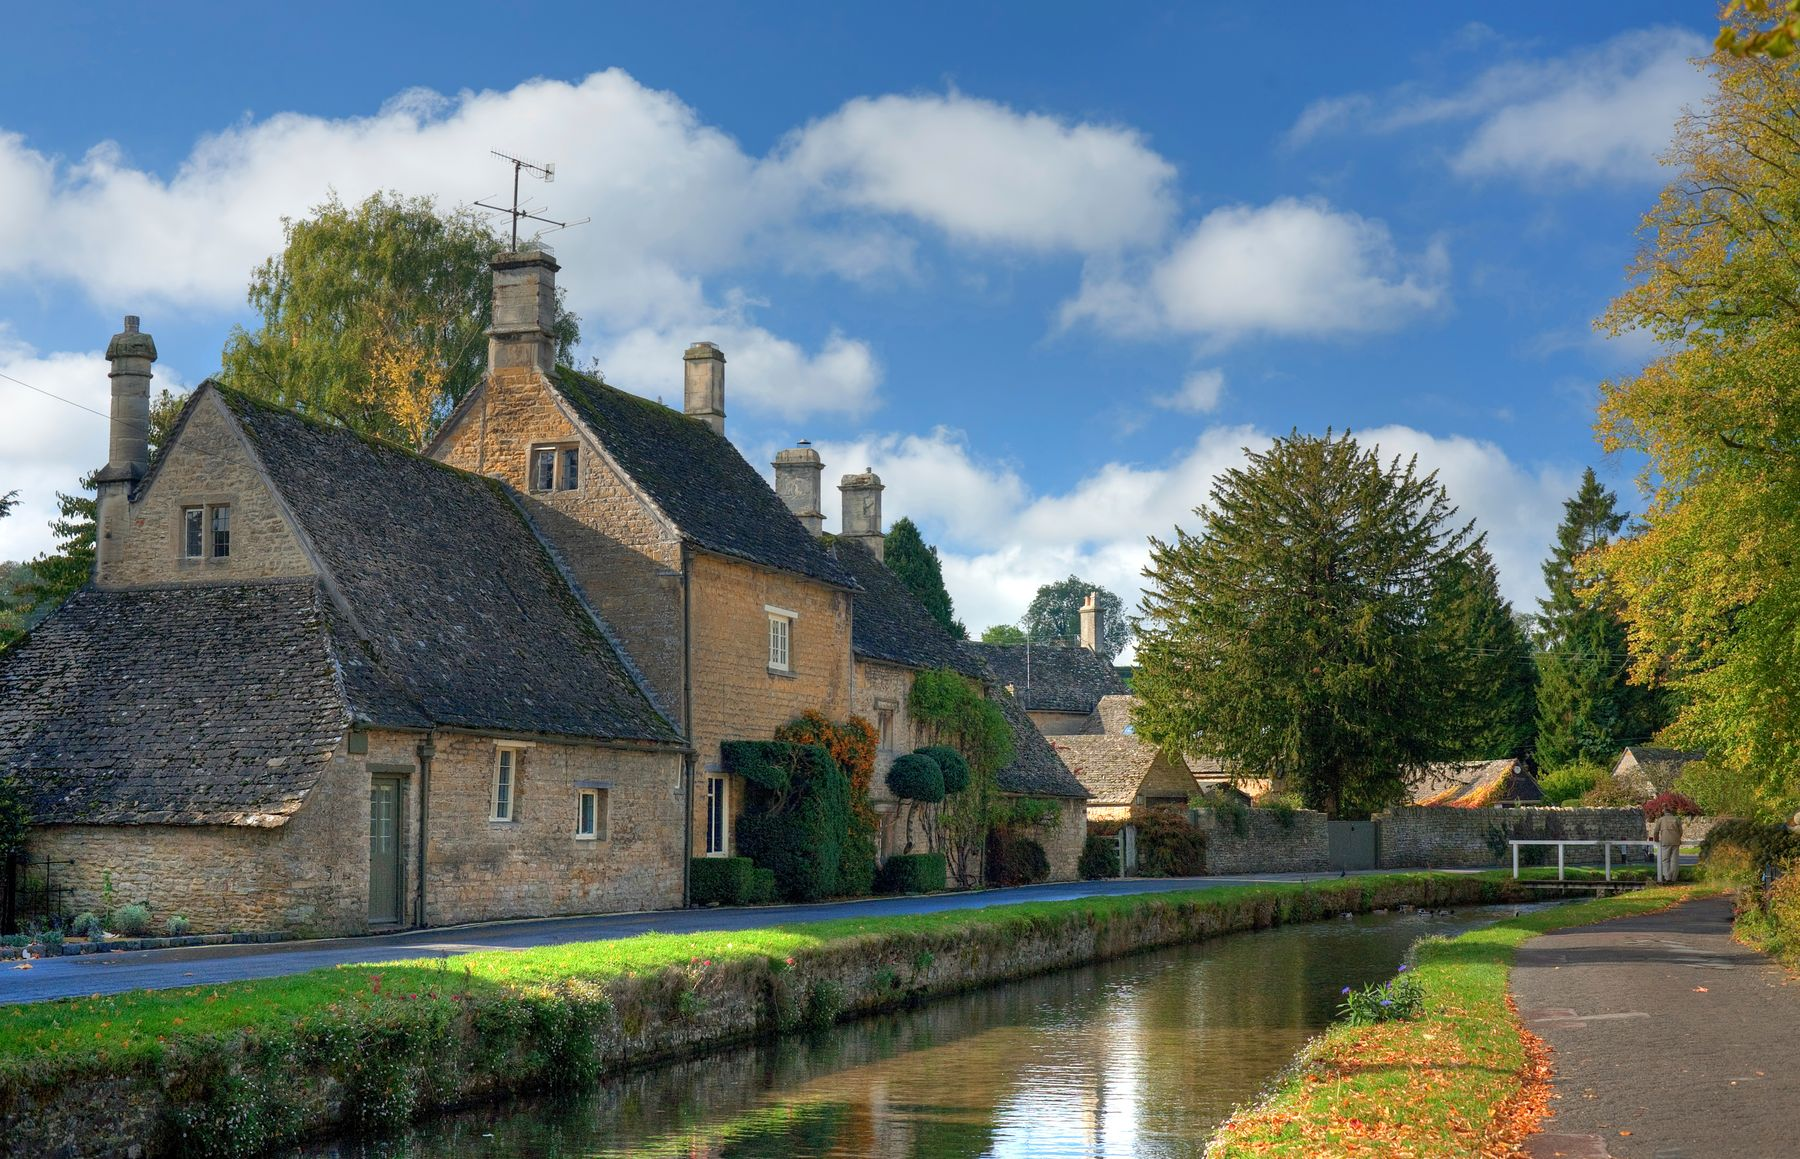 Lower Slaughter has been voted one of the most romantic villages in England